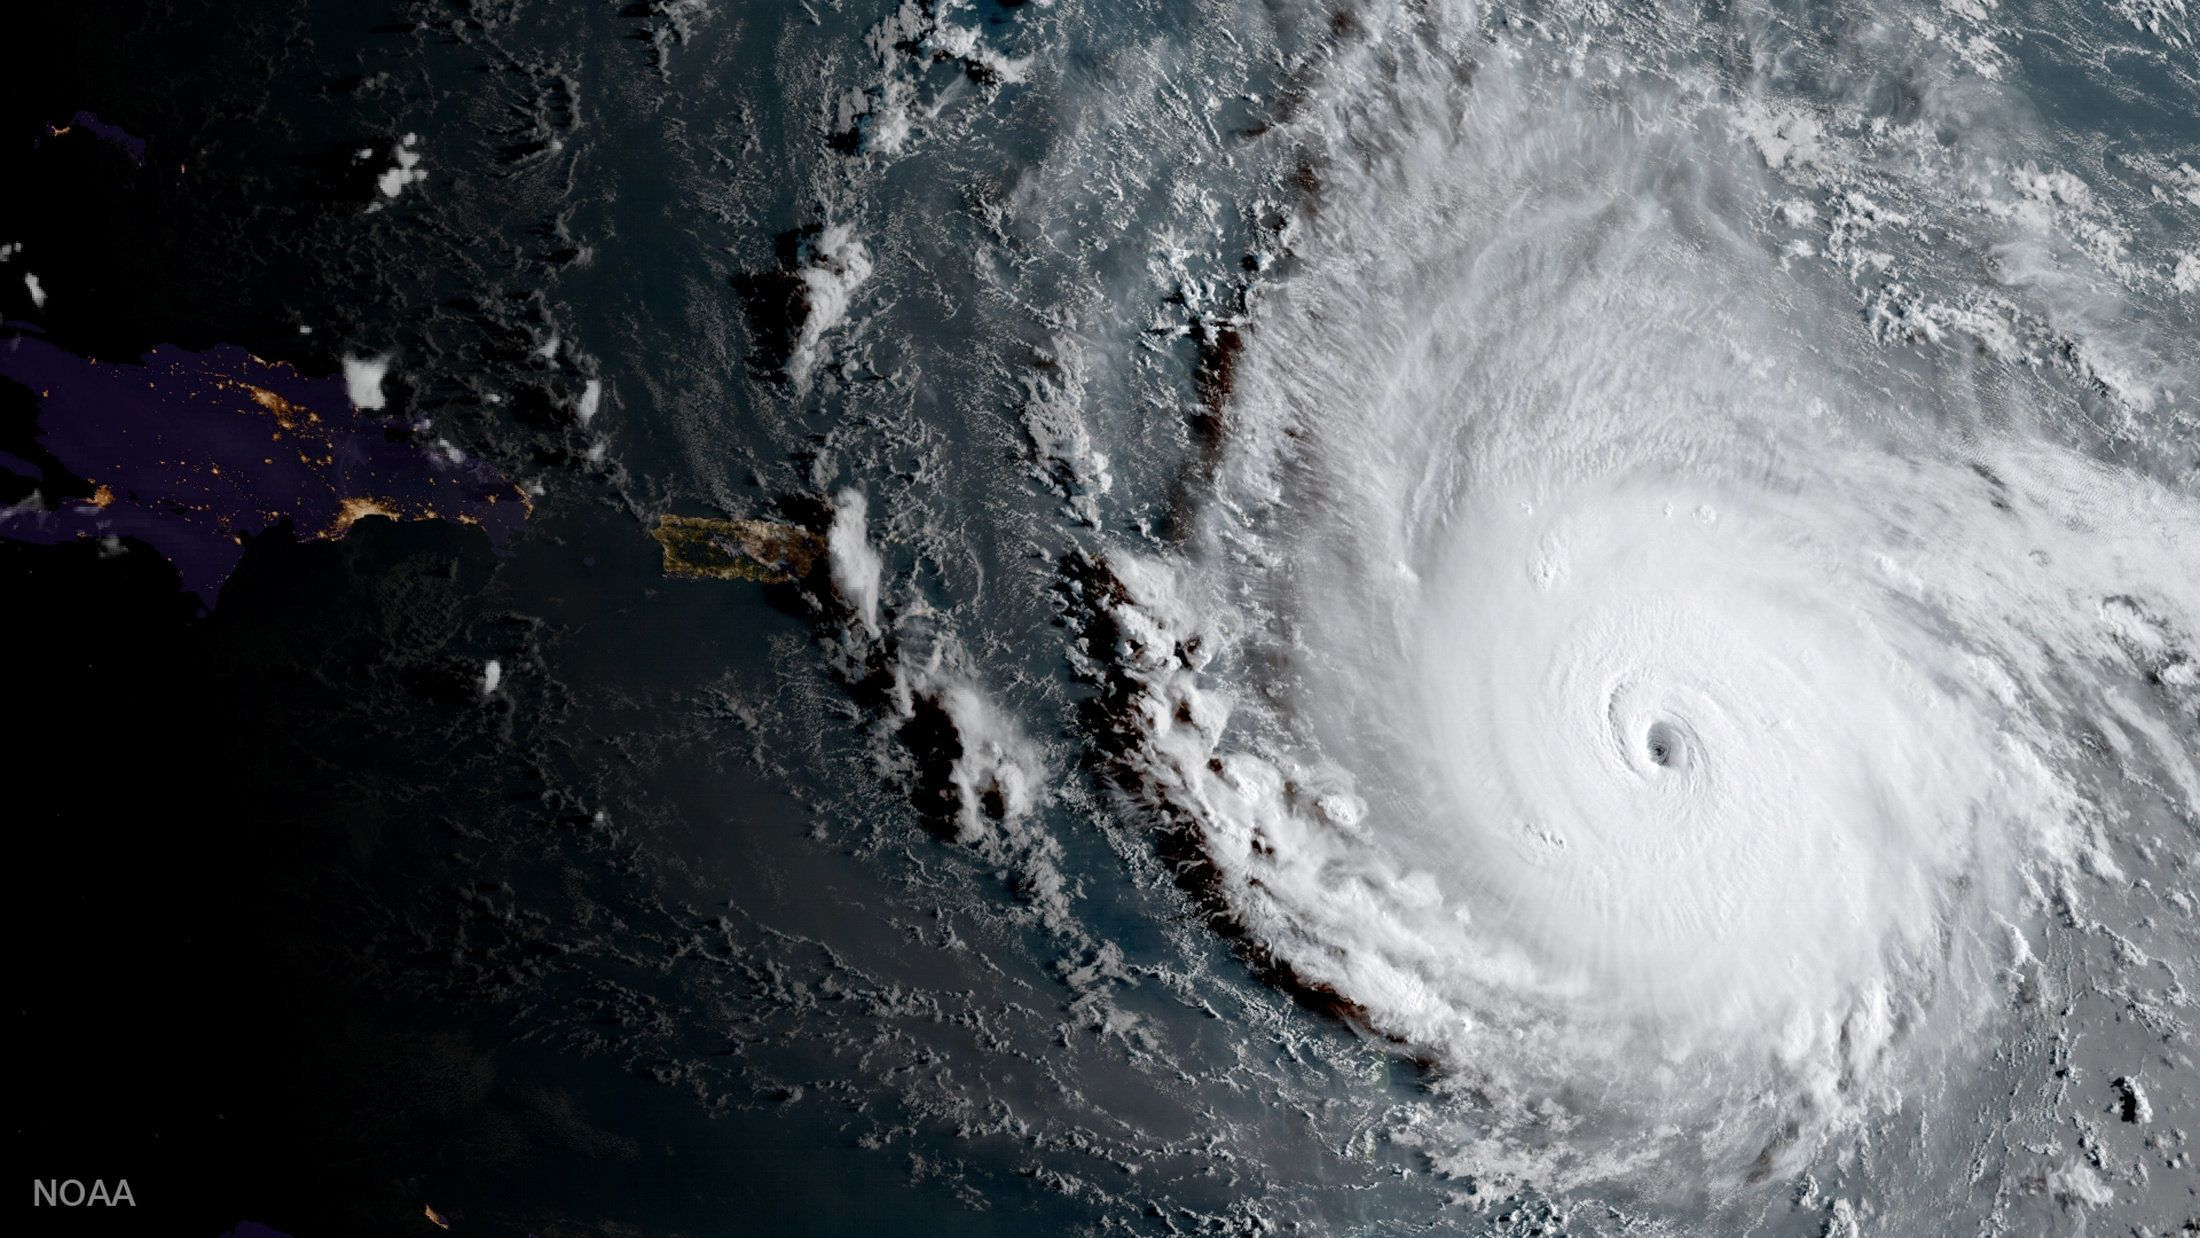 Hurricane Irma, a record Category 5 storm, is seen in this NOAA National Weather Service National Hurricane Center image from GOES-16 satellite taken on September 5, 2017.    Courtesy NOAA National Weather Service National Hurricane Center/Handout via REUTERS     ATTENTION EDITORS - THIS IMAGE WAS PROVIDED BY A THIRD PARTY     TPX IMAGES OF THE DAY